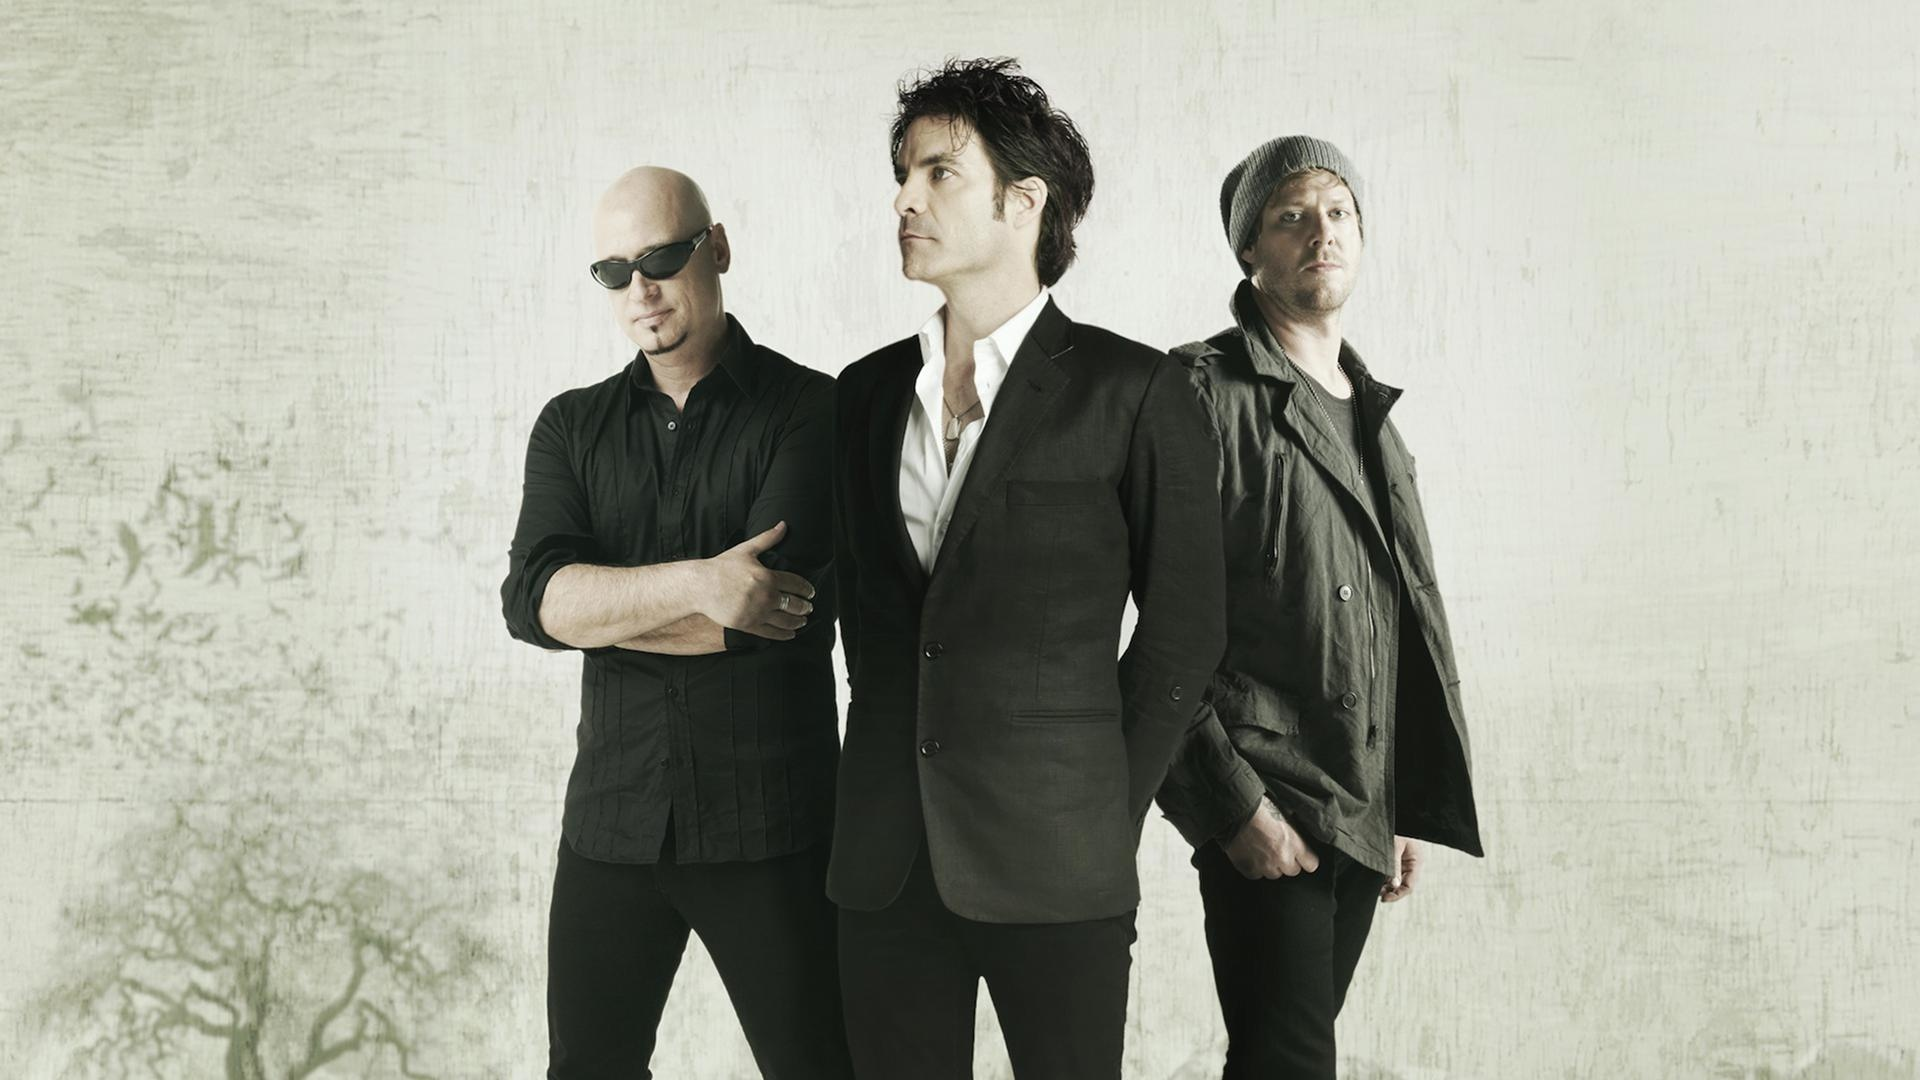 Train will perform at Darien Lake Performing Arts Center on June 20.